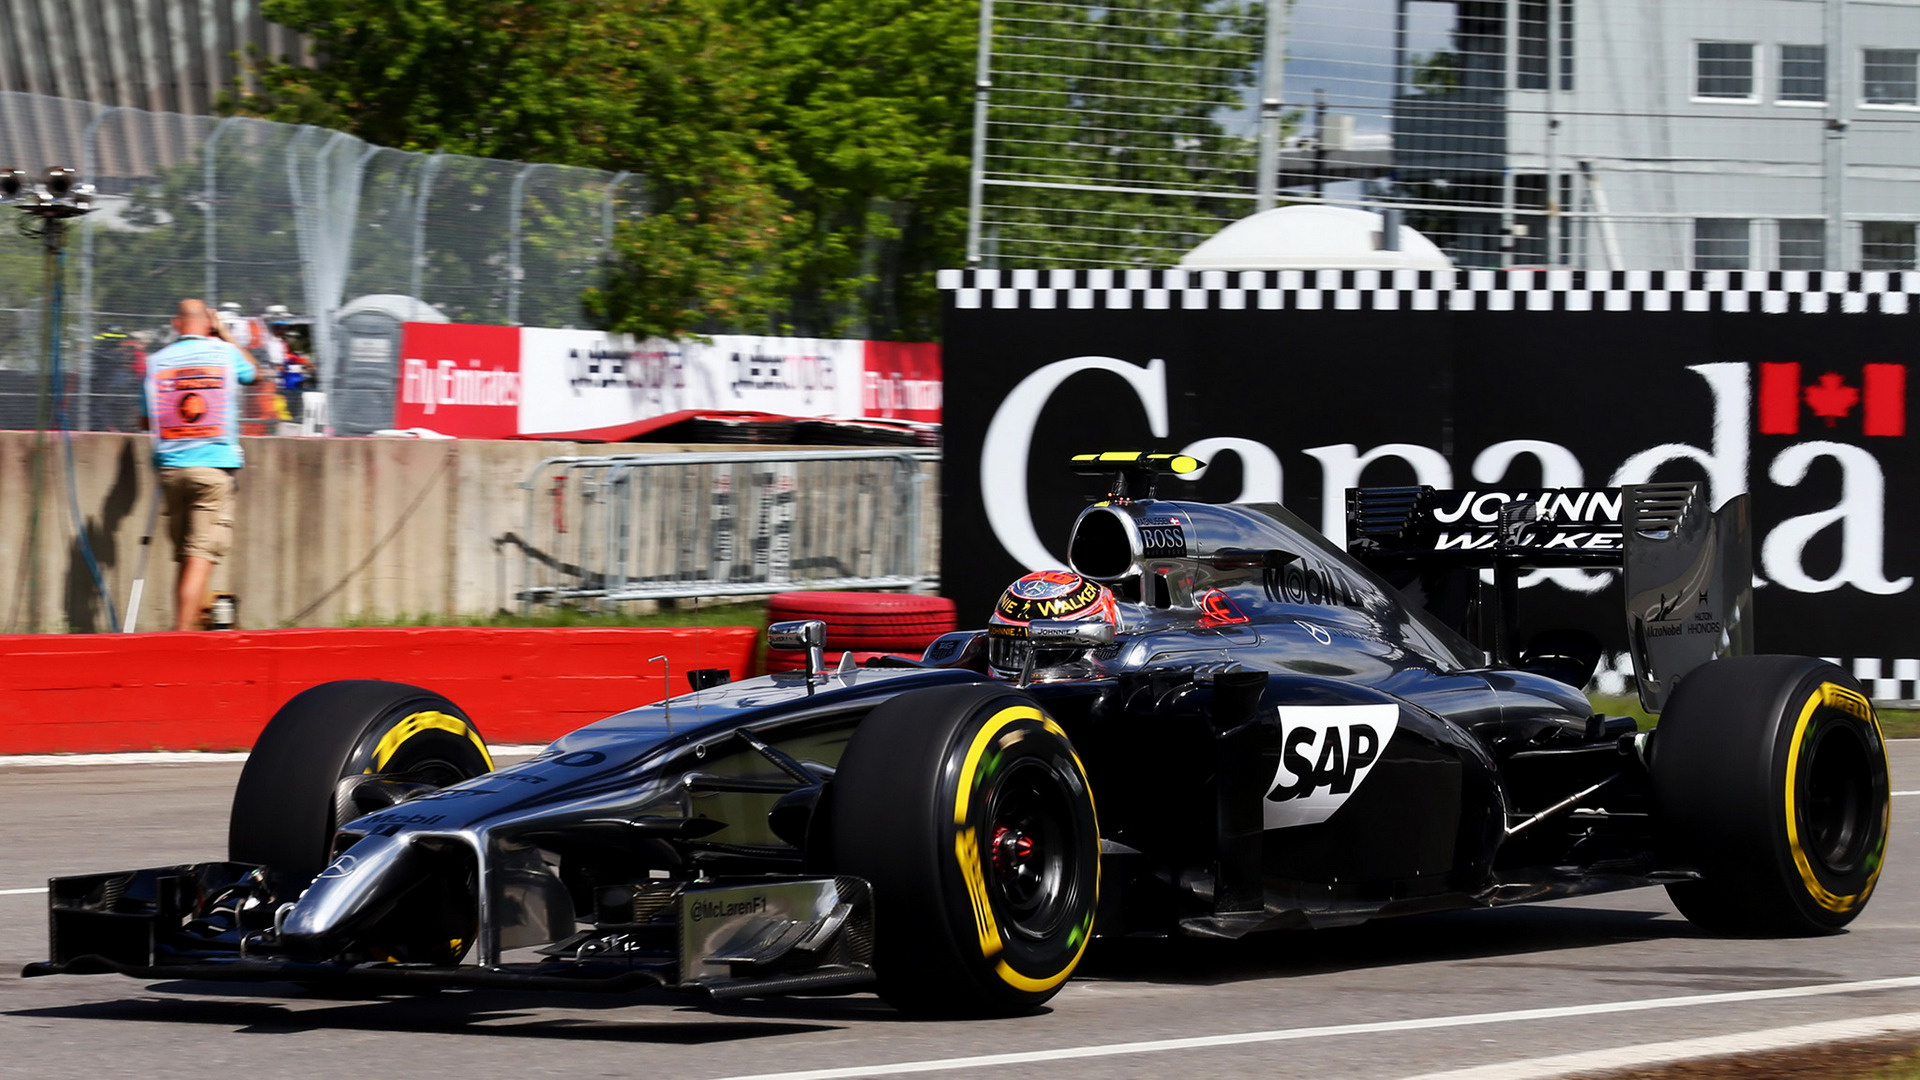 Mclaren Mercedes Mp4 29 2014 Wallpapers And Hd Images